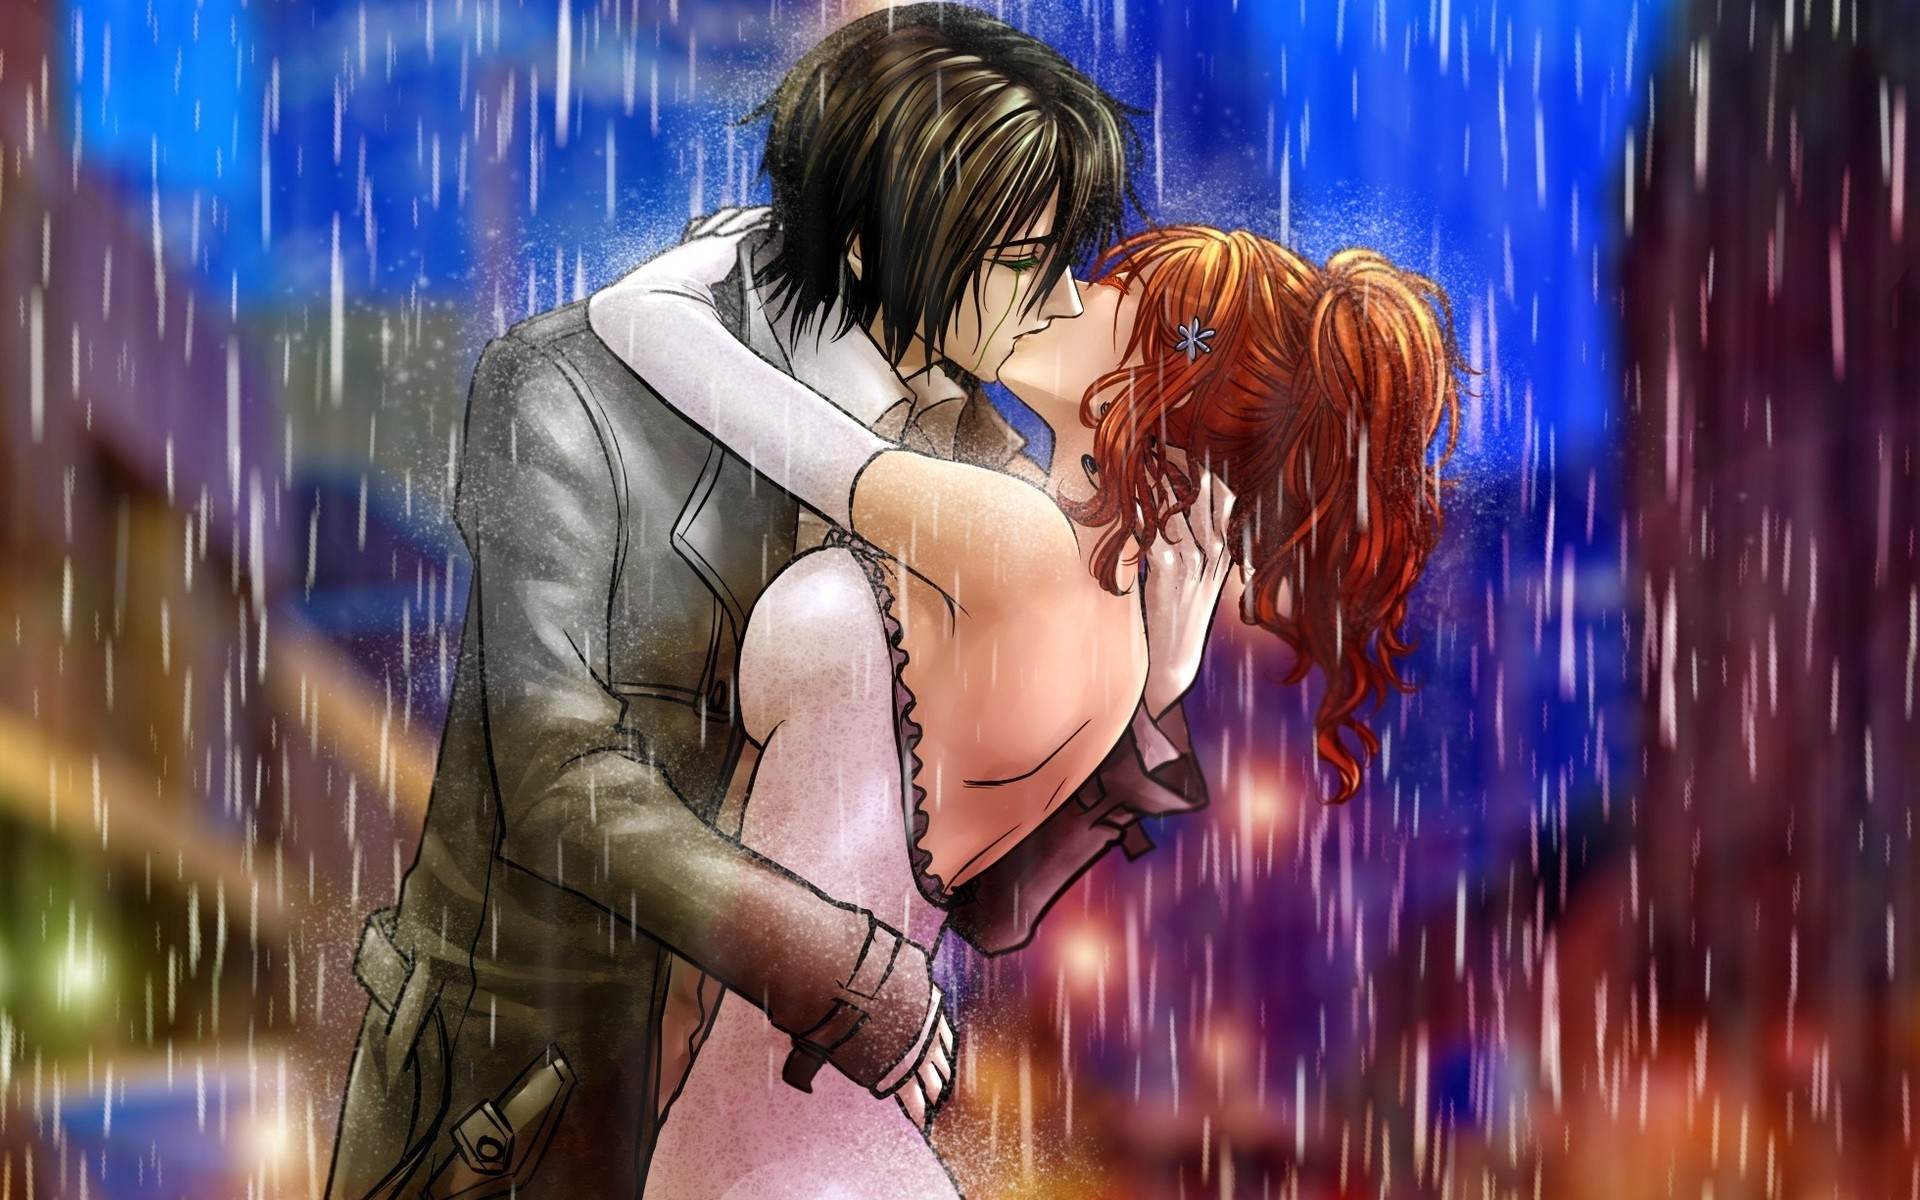 1920x1200 Wallpaper Boy, Girl, Kiss, Rain, Hug